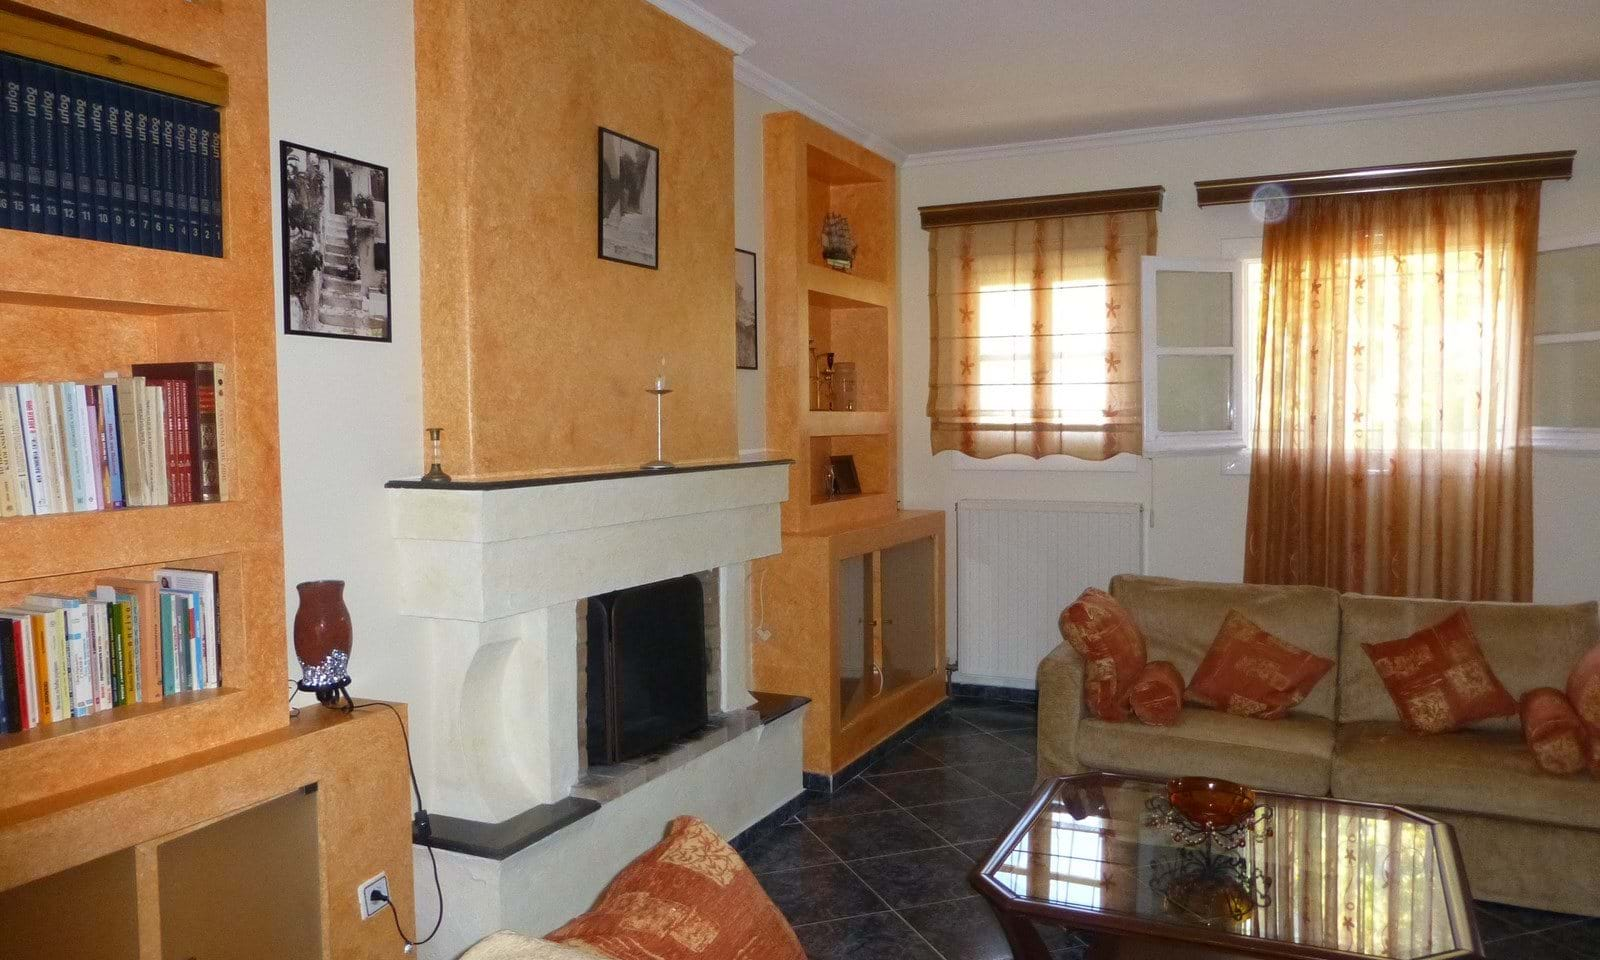 Property for sale in Corfu Greece